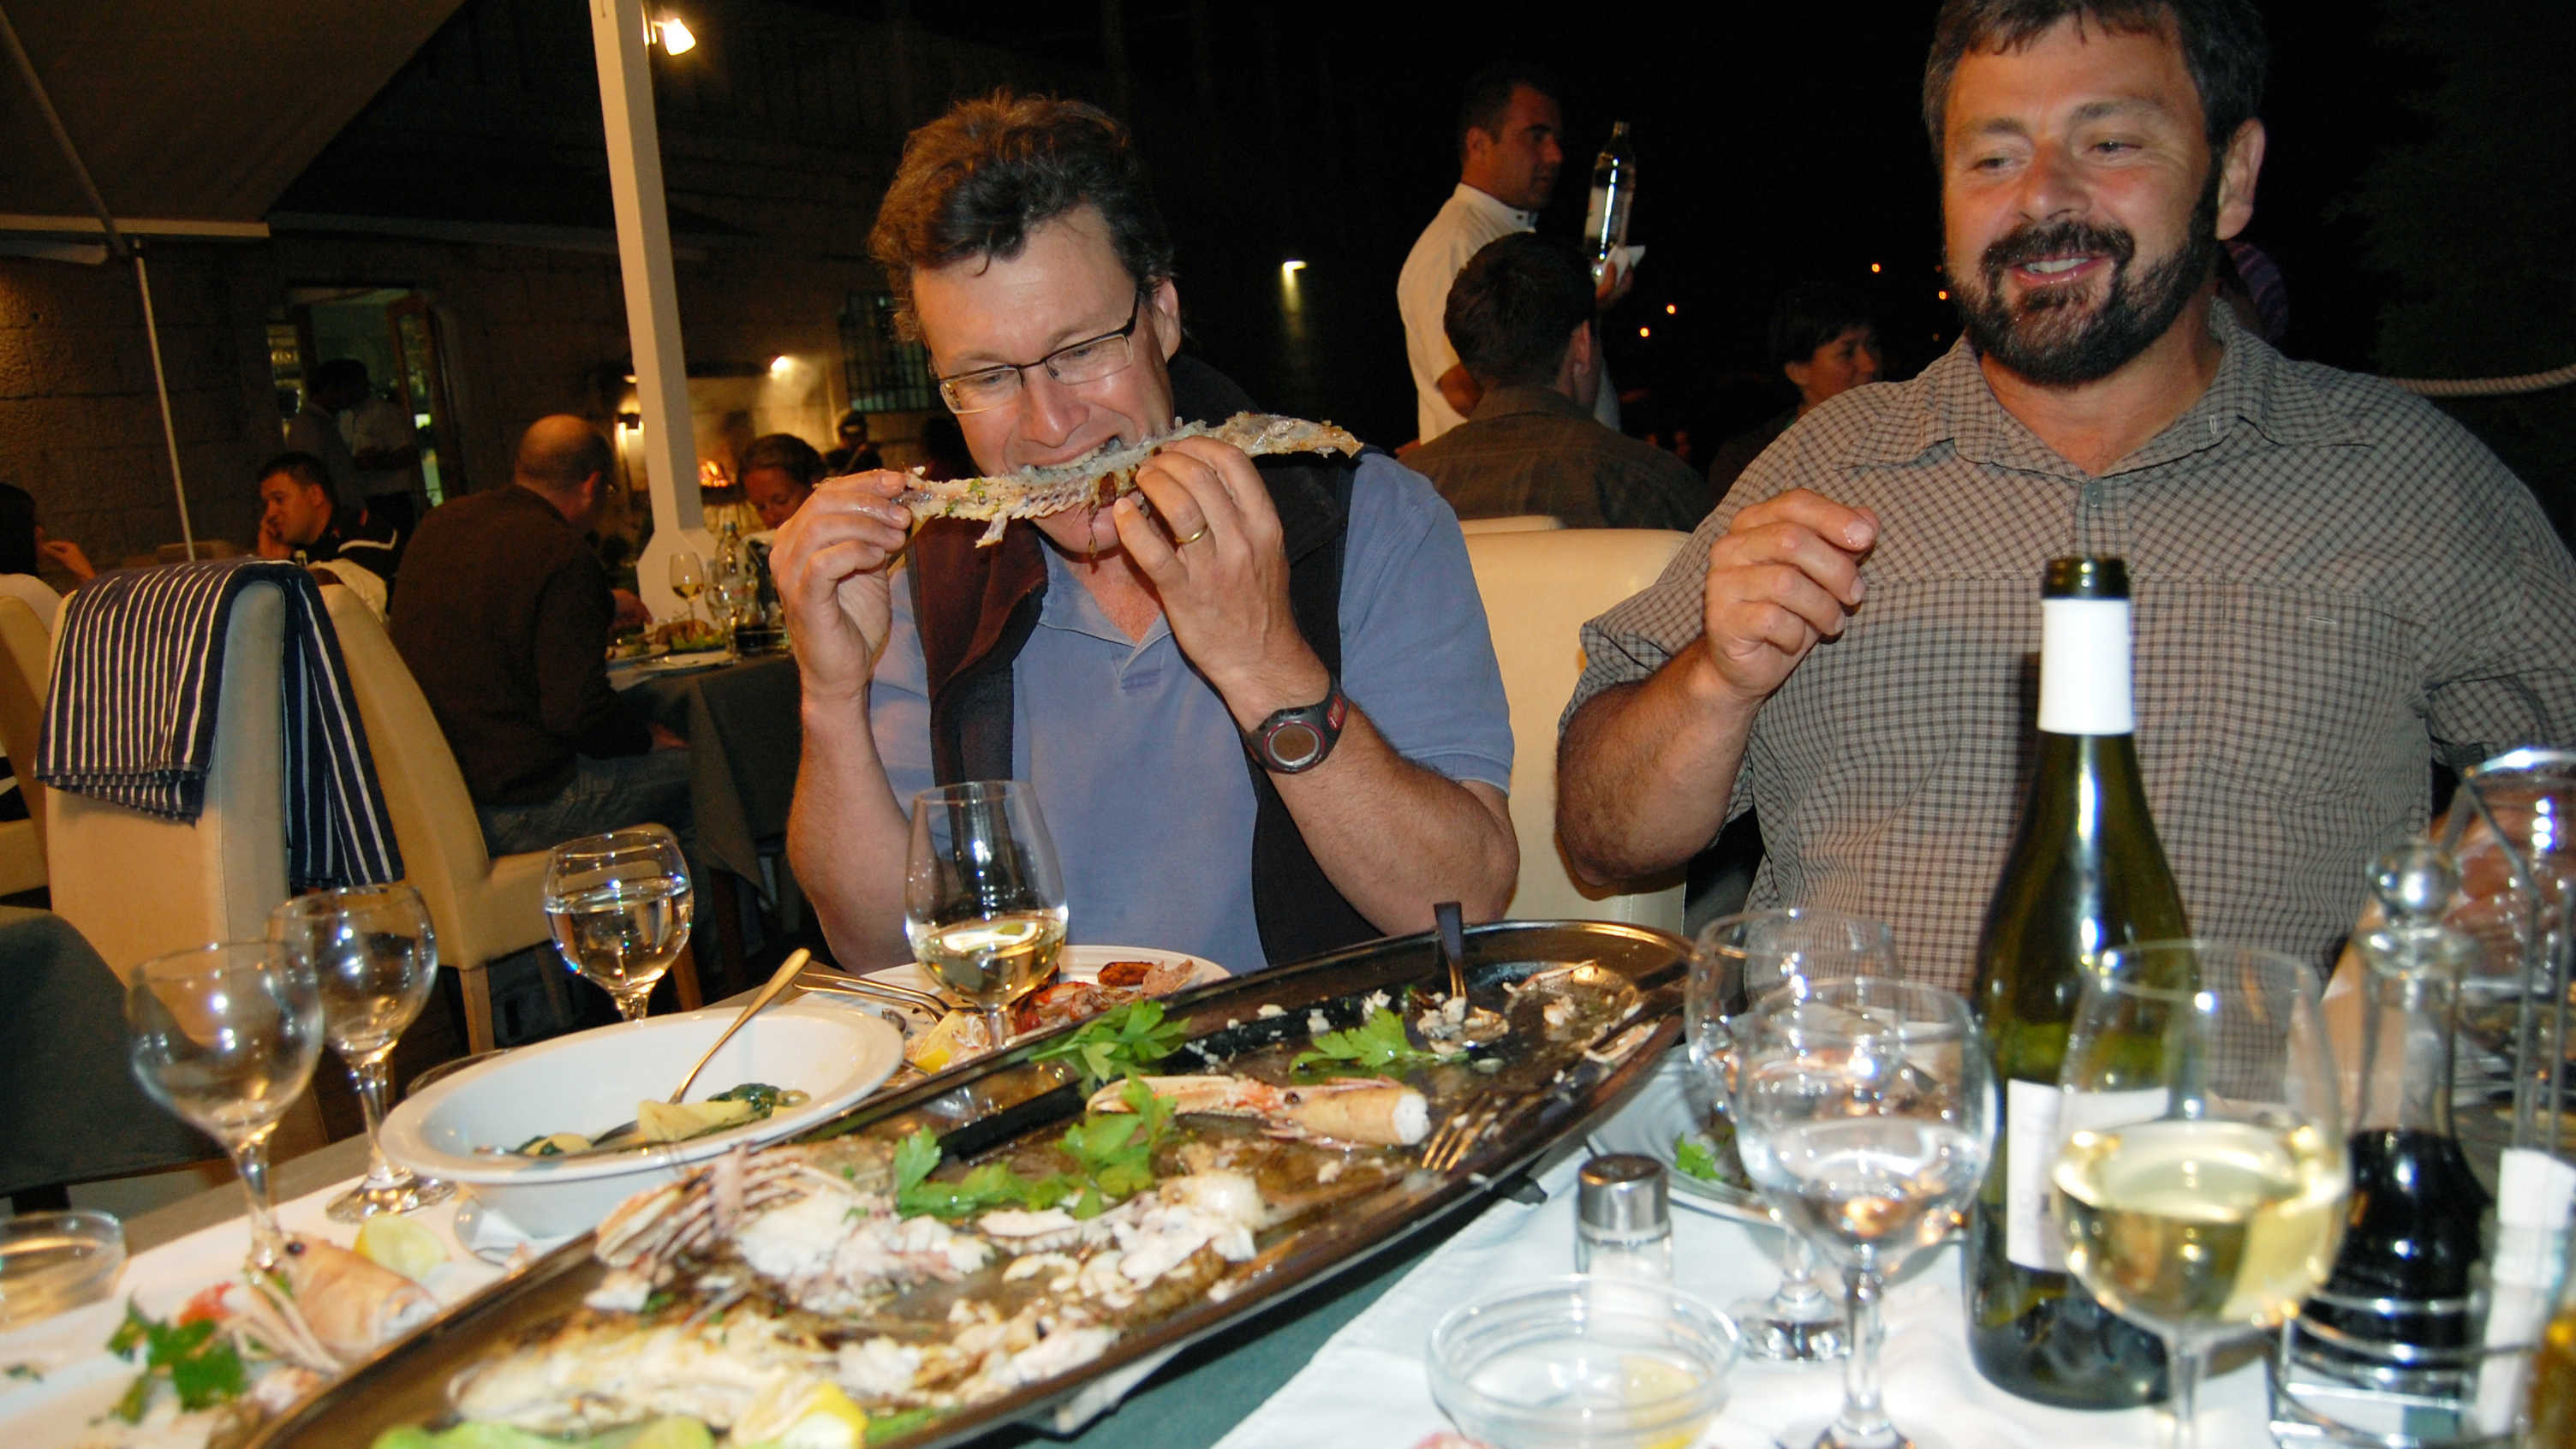 Karel and Simon dine in Hvar, Croatia